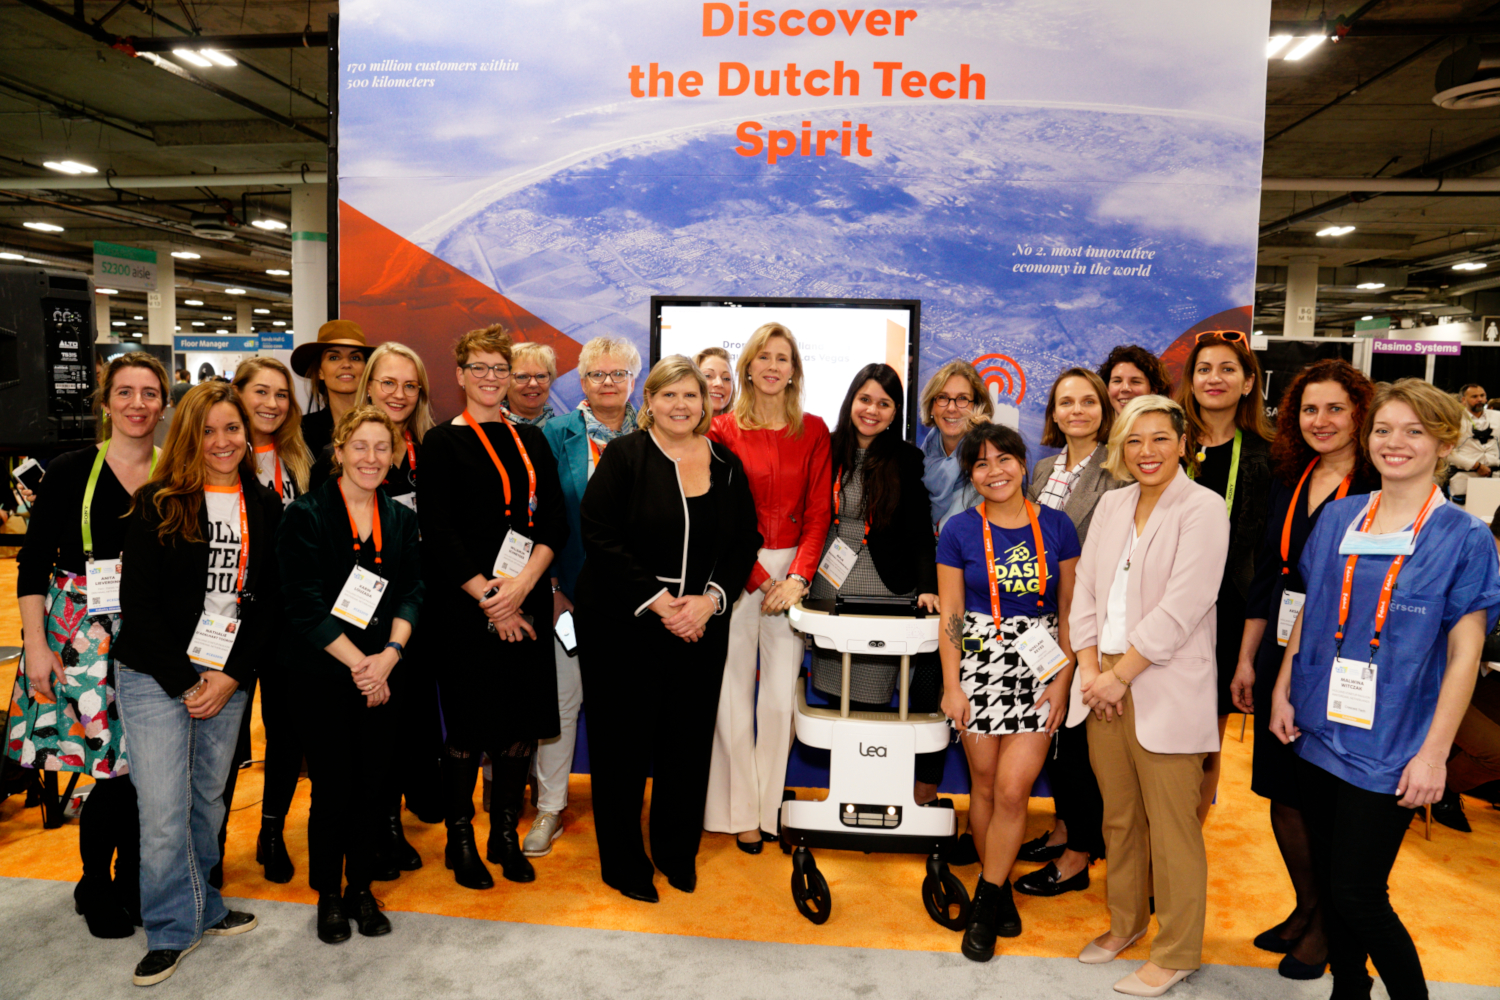 Les Entrepreneures des Startups des Pays-bas au CES 2019 (crédits: (c) Heidi Alletzhauser & Consulate General of the Kingdom of the Netherlands in San Francisco / Netherlands Embassy / Flickr Creative Commons Attribution 2.0 Générique (CC BY 2.0))